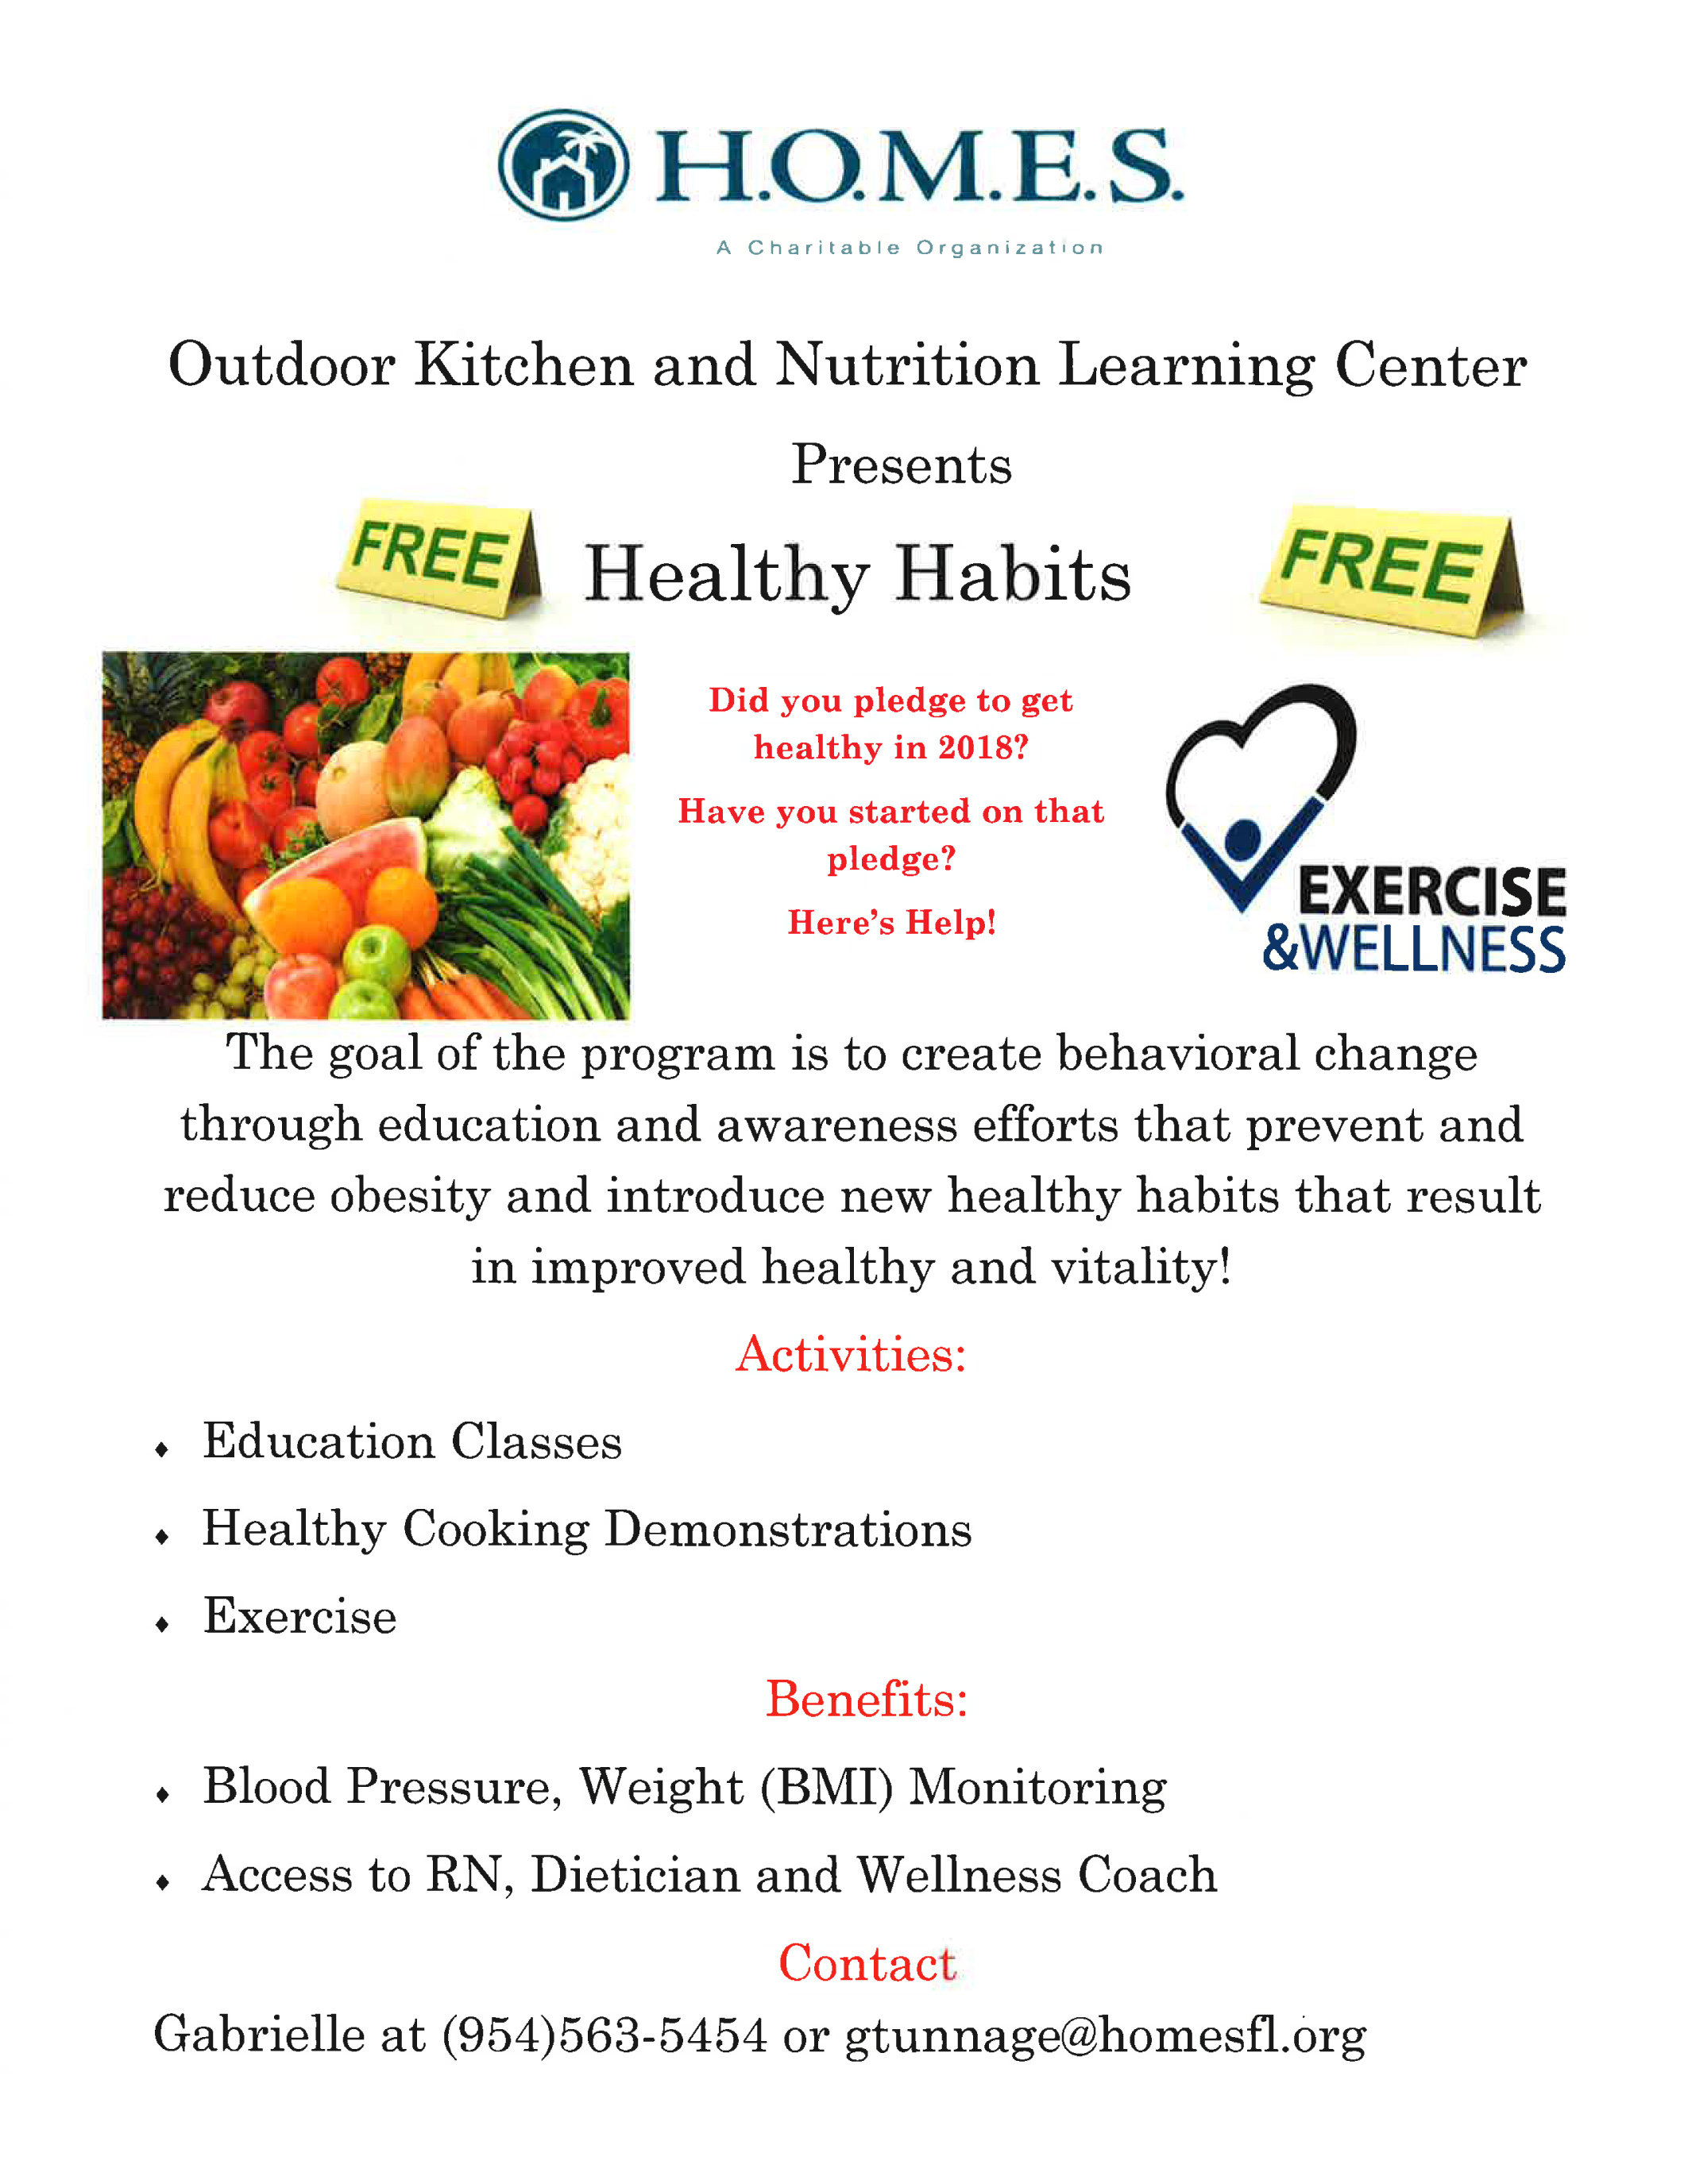 Healthy habits for healthy homes